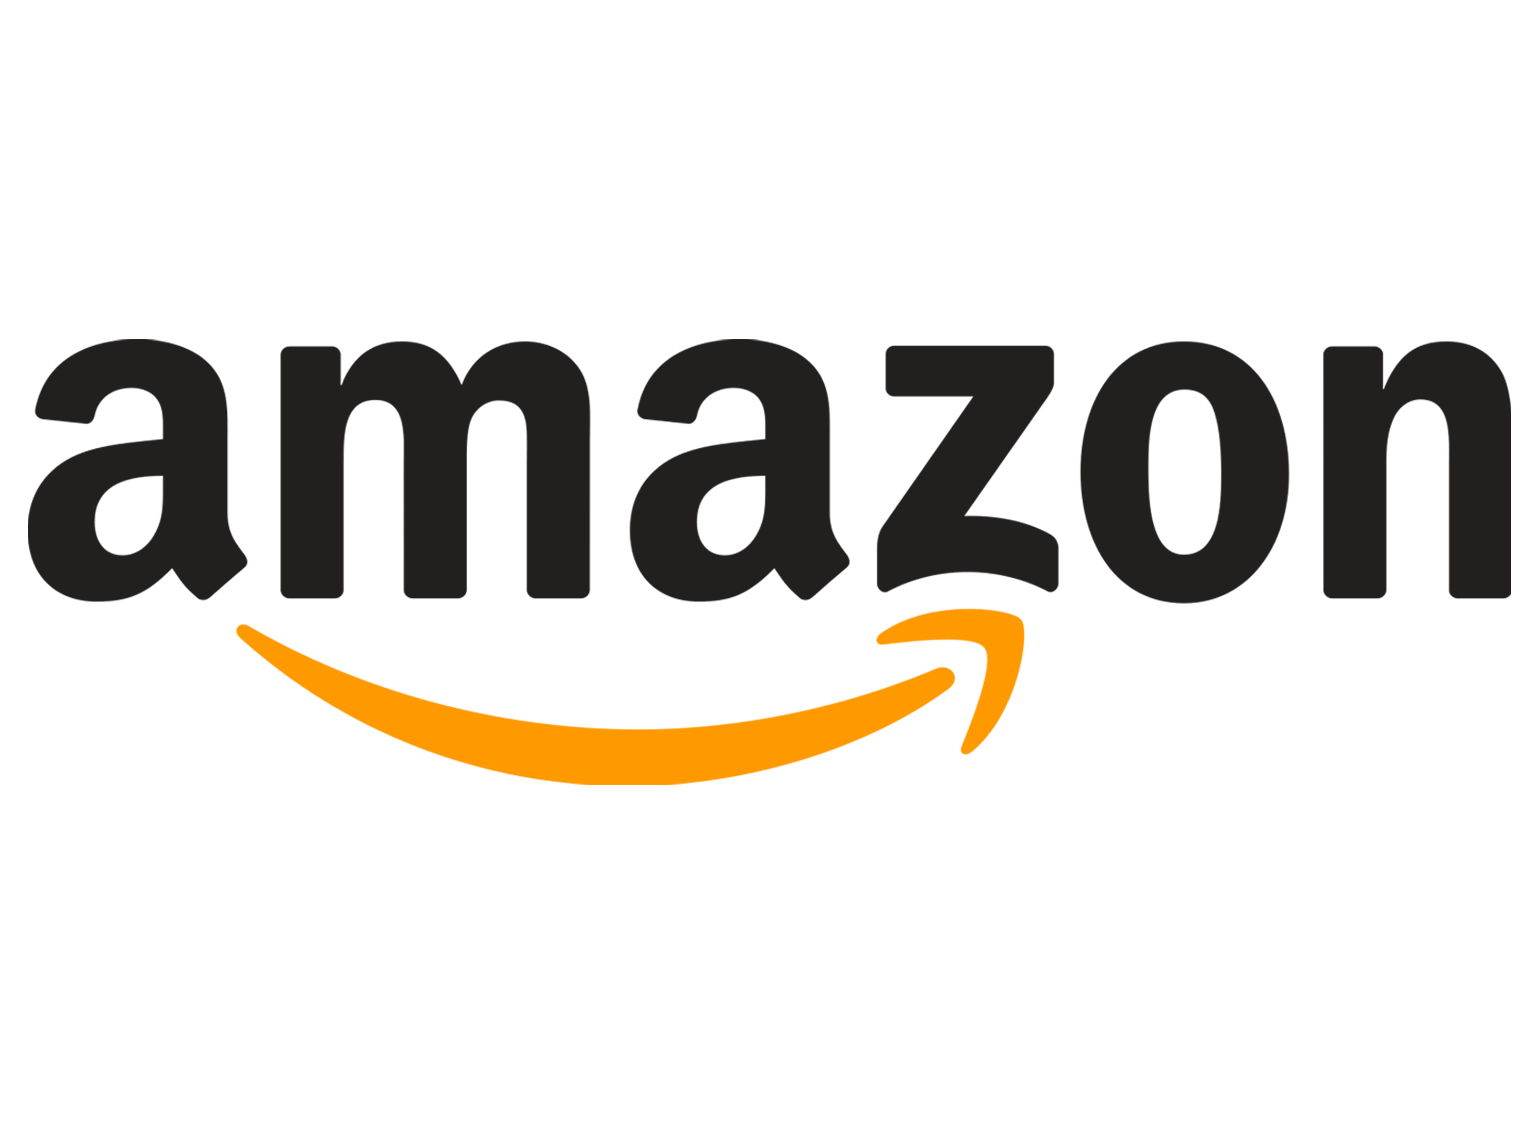 amazon attacked by hackers in crypto mining